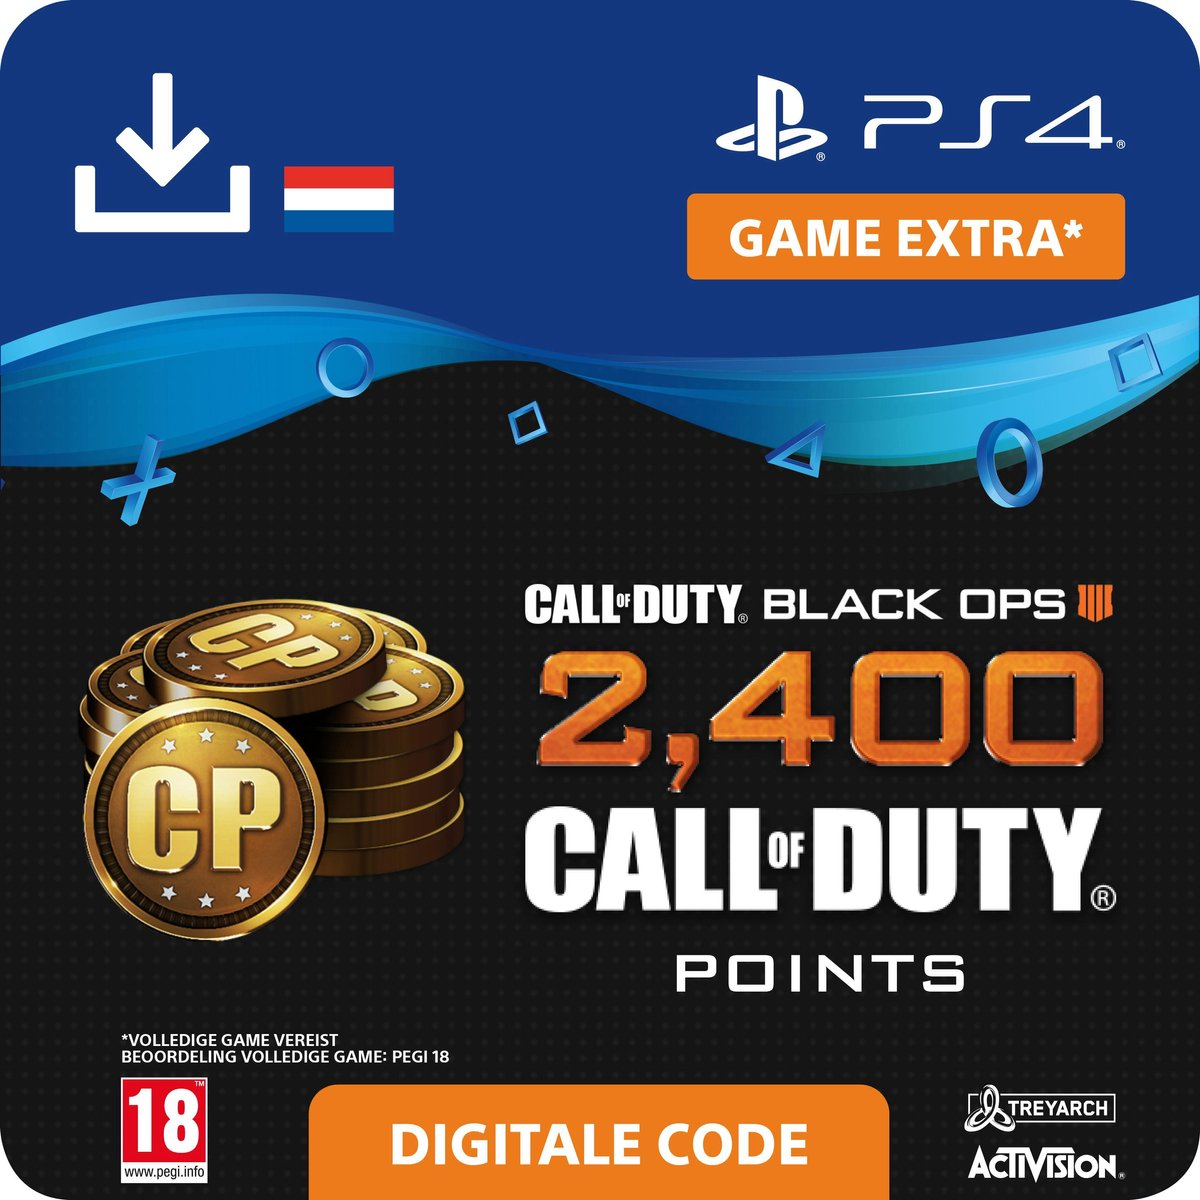 Call of Duty Black Ops 4 - digitale valuta - 2400 Call Points - NL - PS4 download